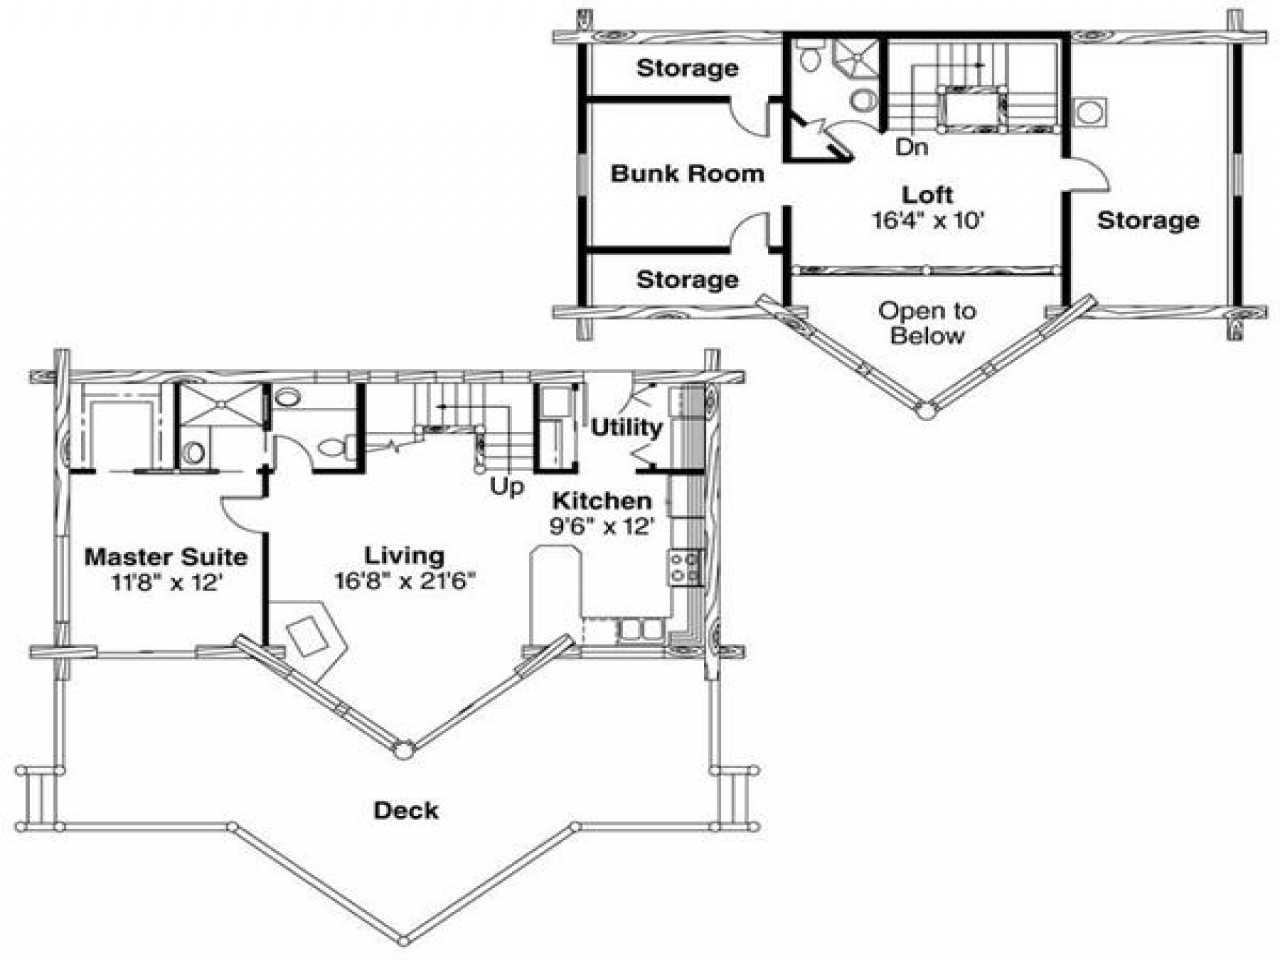 600 sq ft cabin house plans 600 sq ft house layout 600 for 600 square foot cabin plans